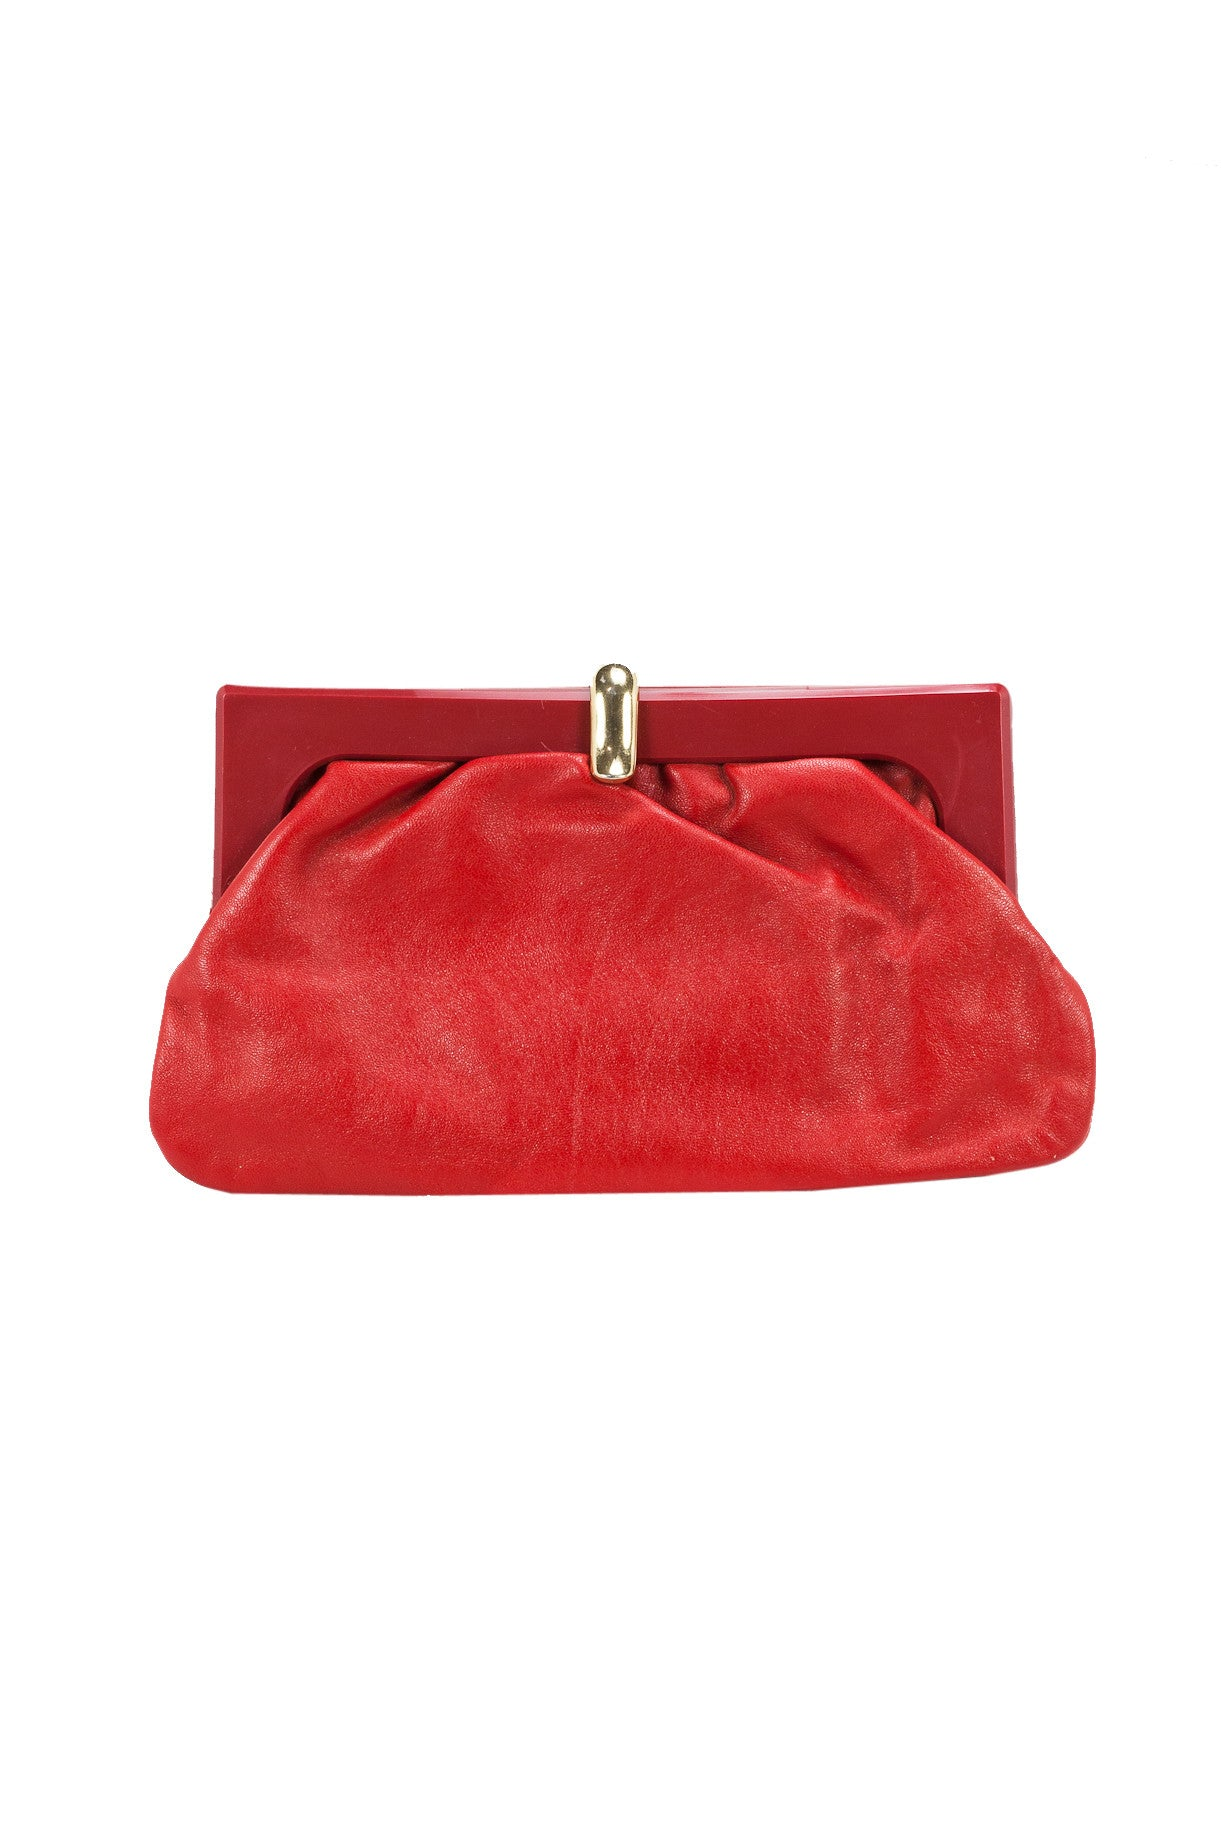 70's__Vintage__Red Leather Clutch